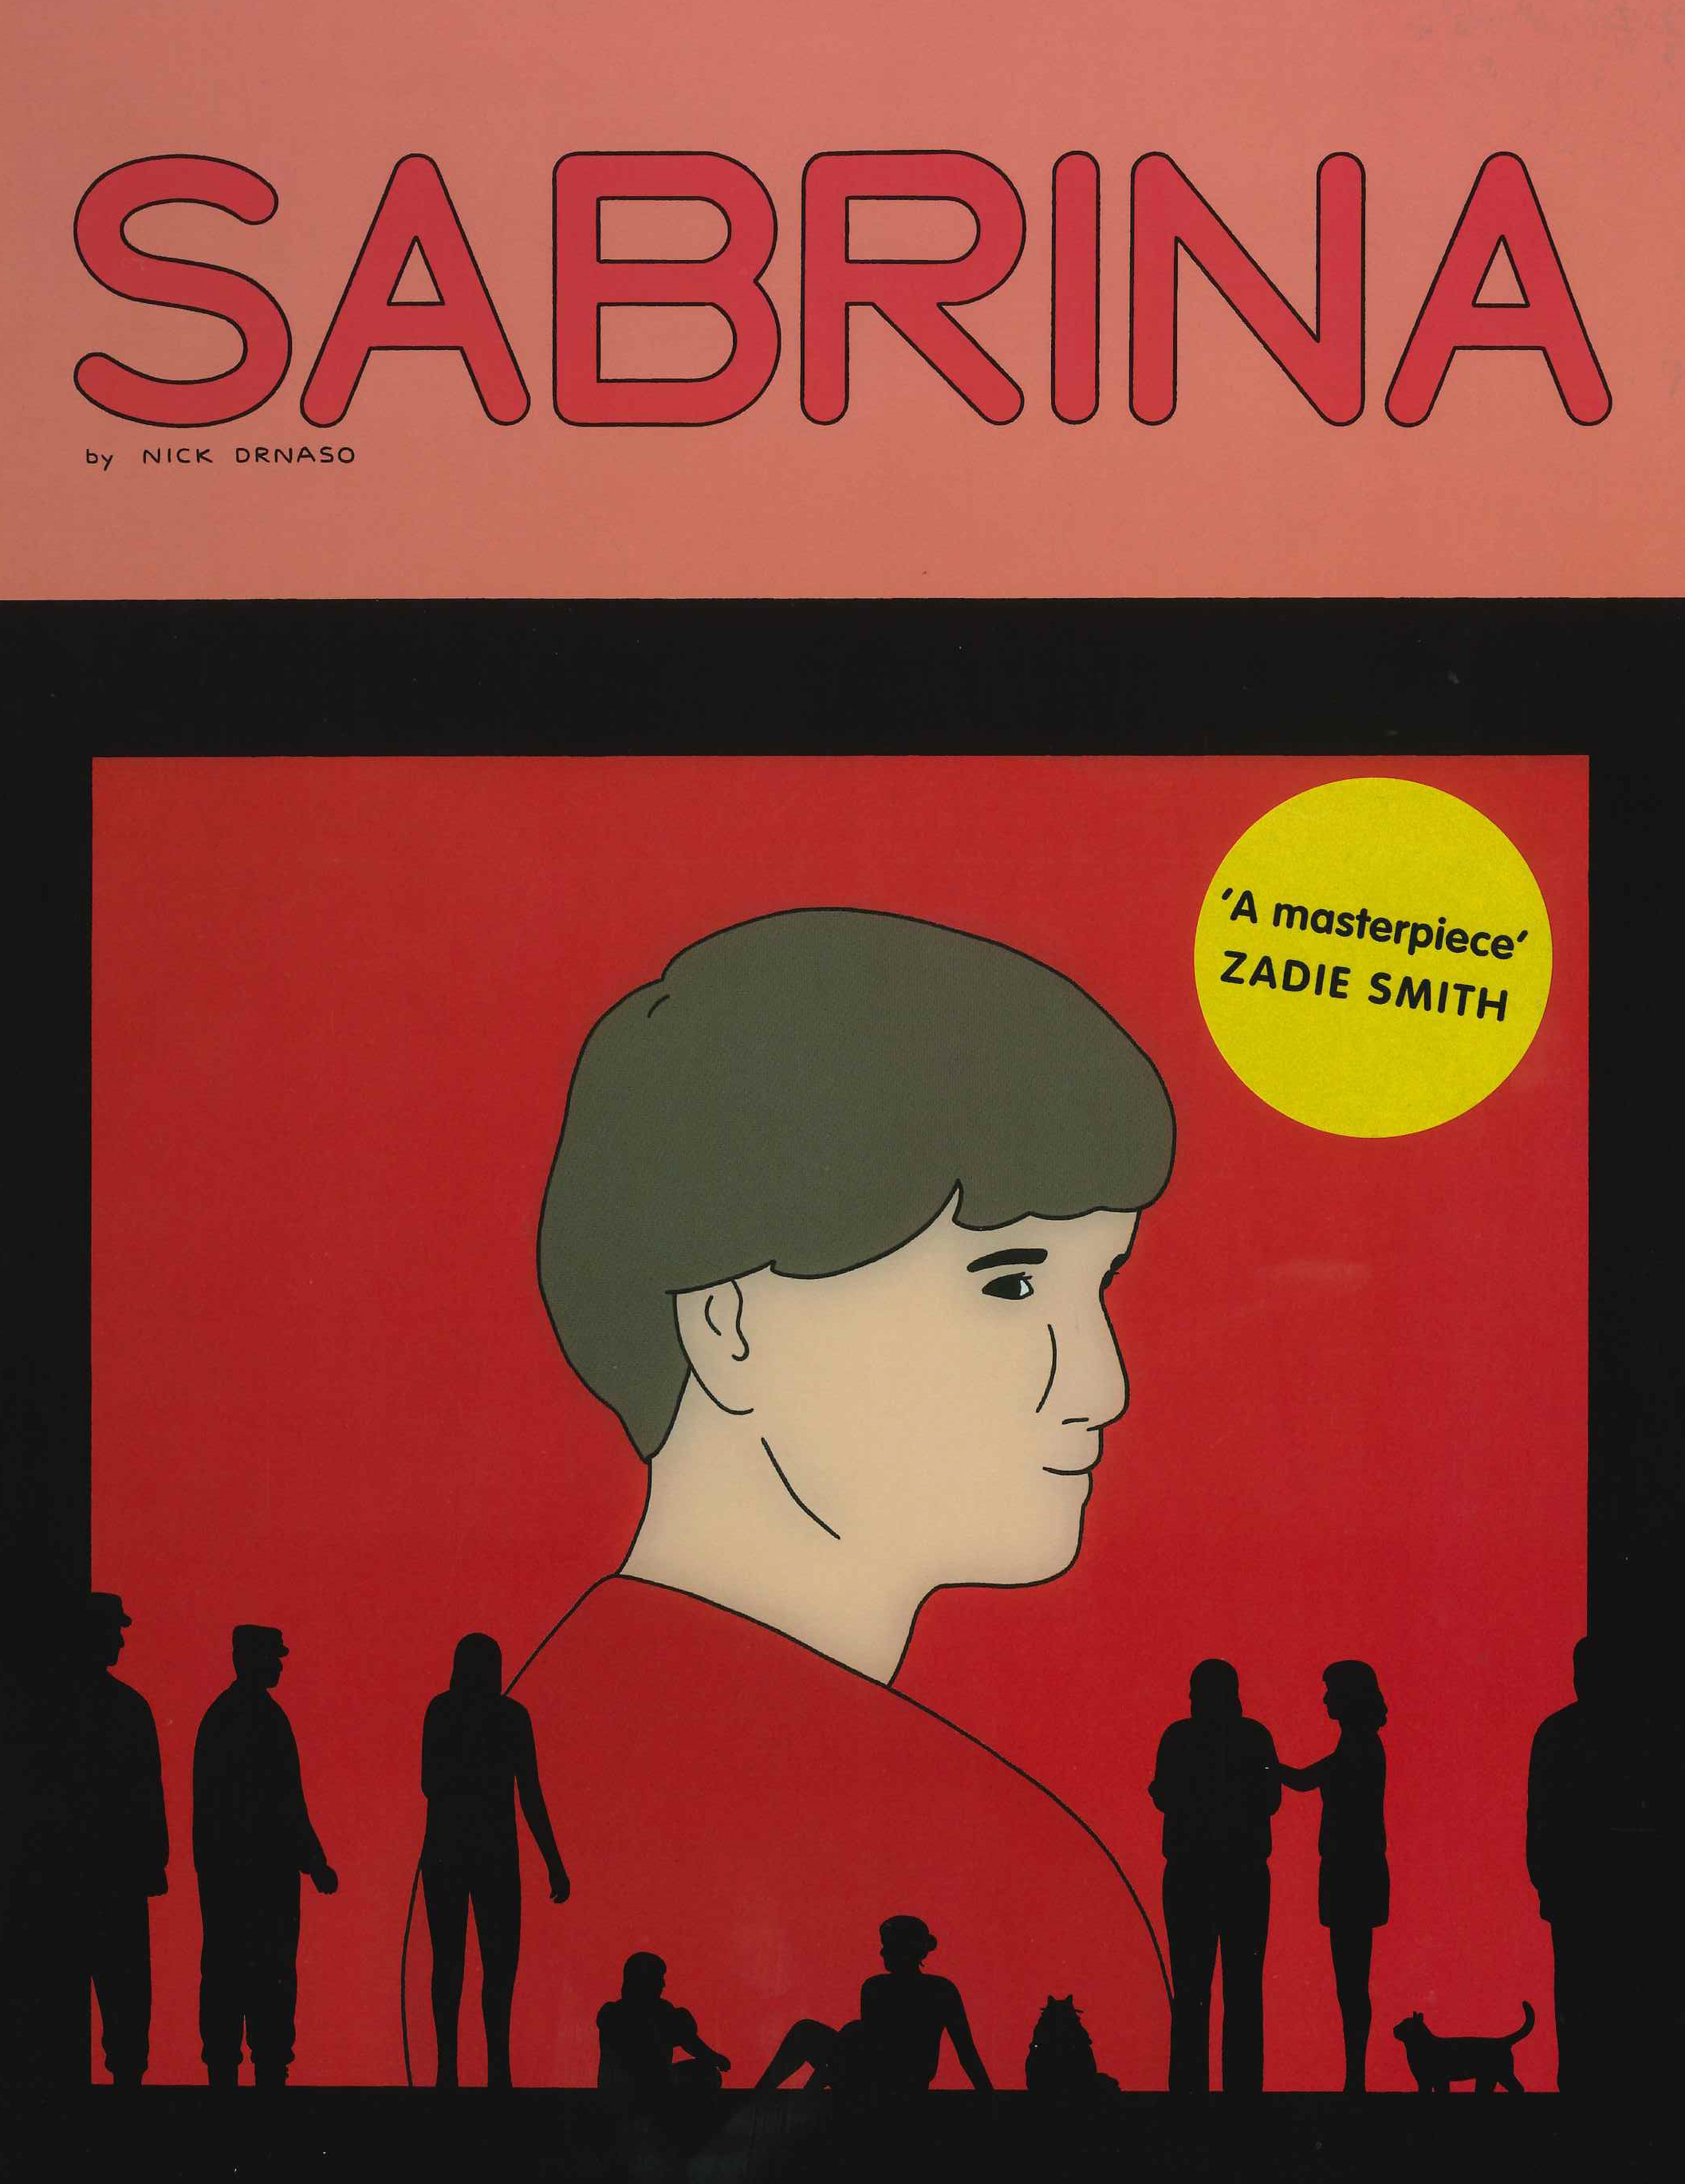 Sabrina by Nick Drnaso, ISBN: 9781783784905